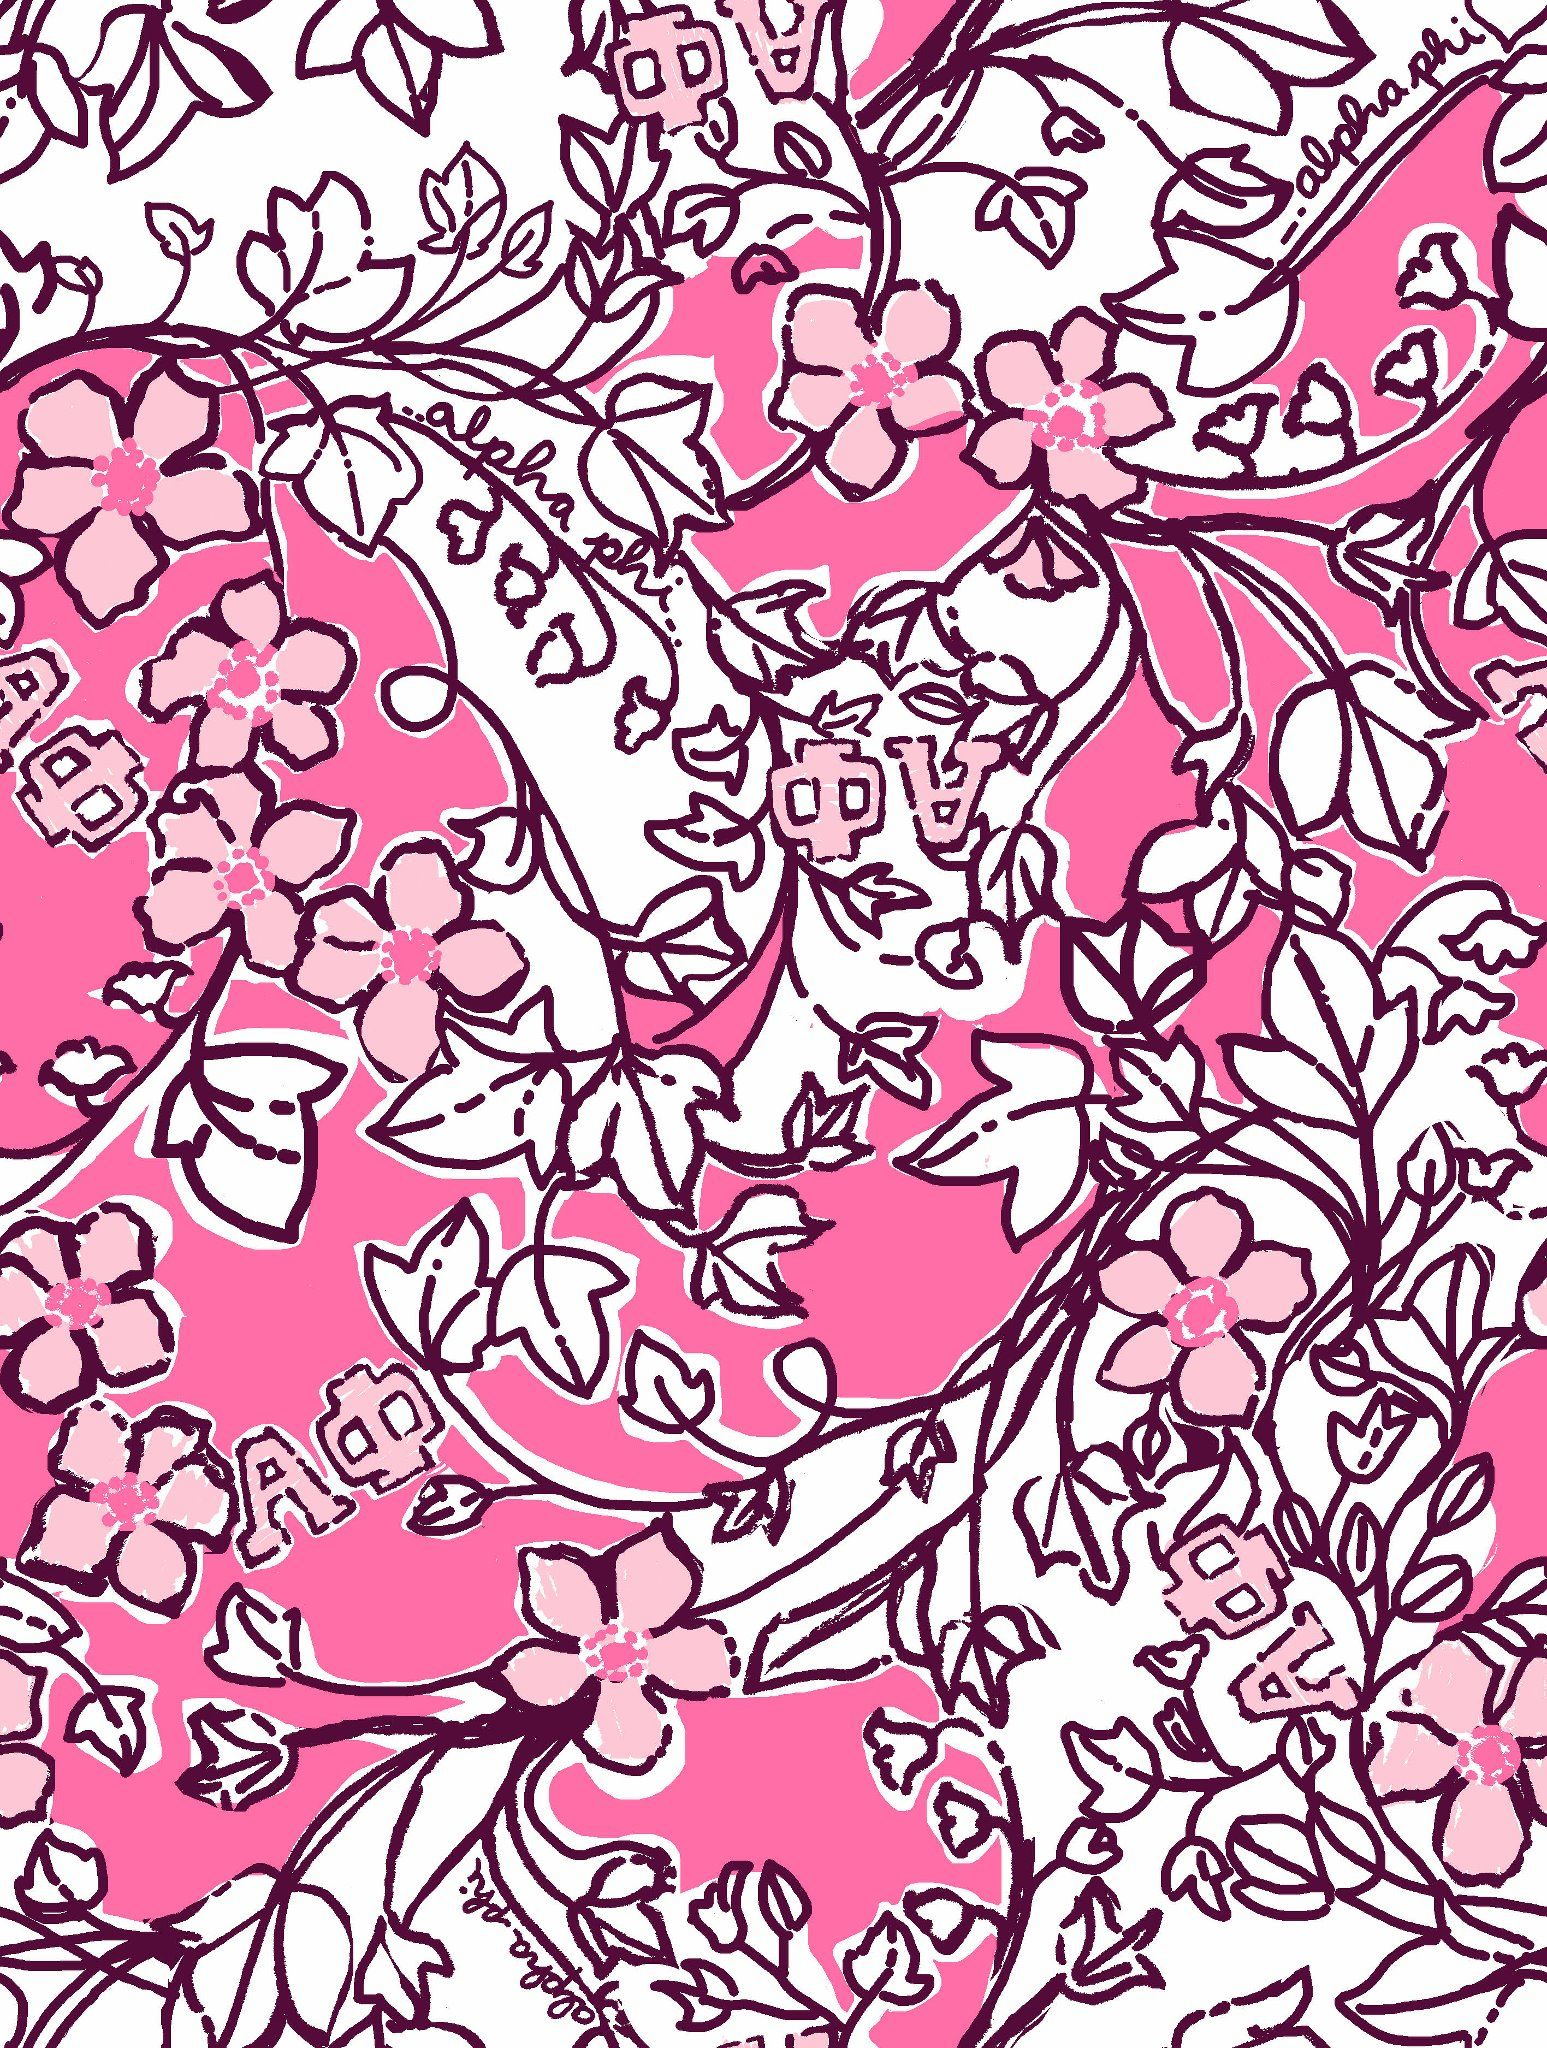 1eabdc60b058a2 the new Lilly Pulitzer Alpha Phi print! I think this is cute and would make  great bedding when Amy moves into the house next fall.